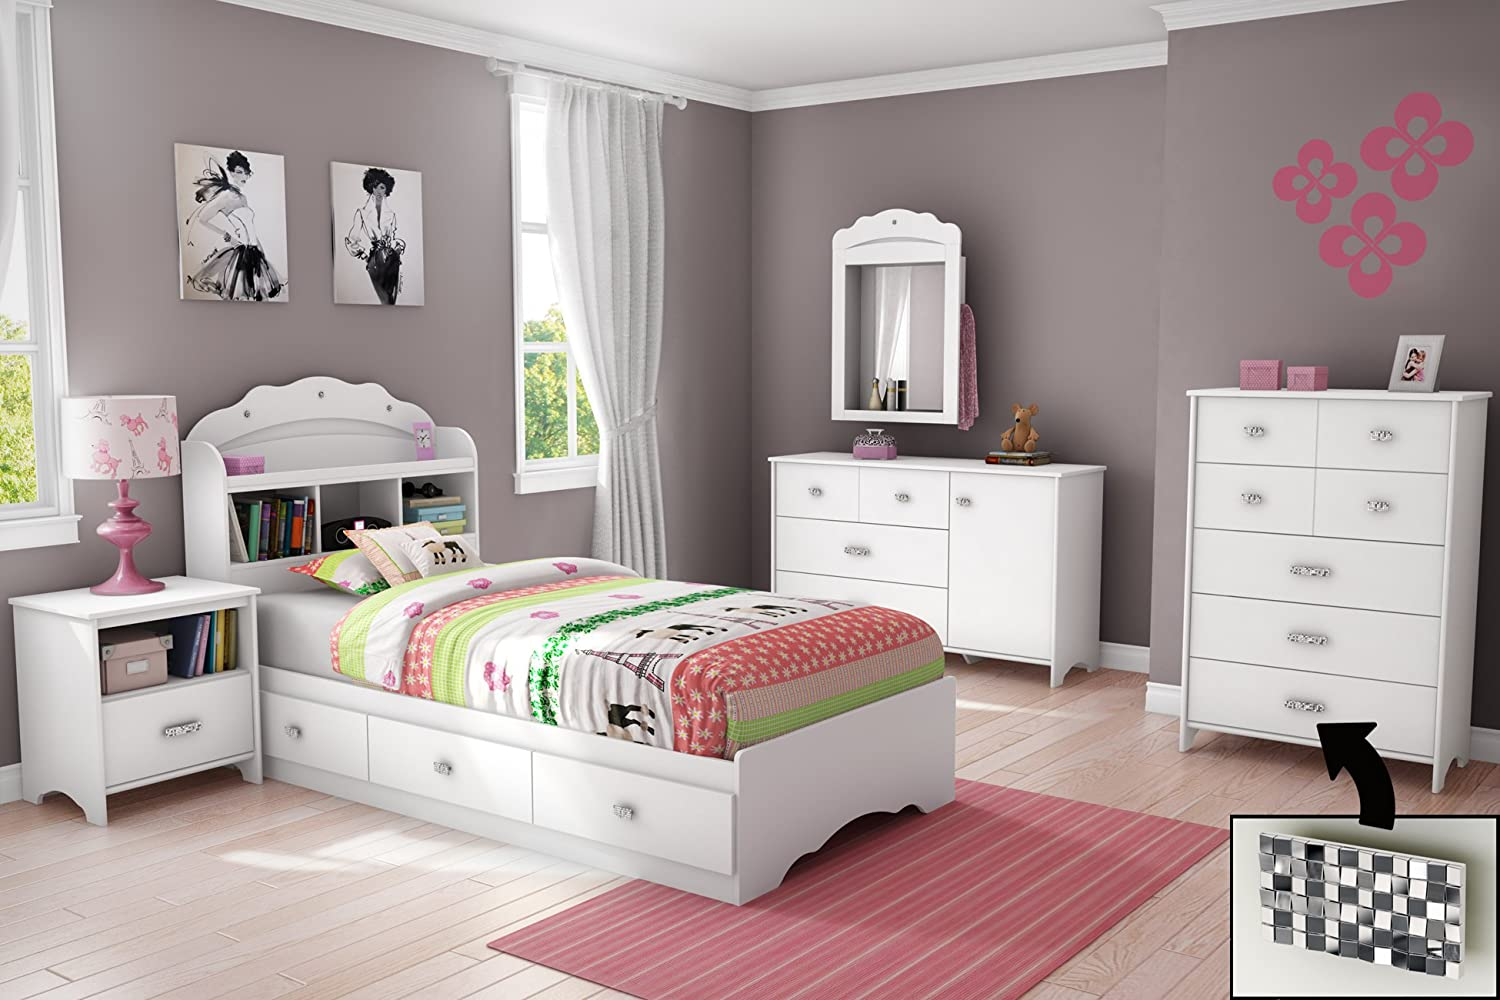 pink and white bedroom furniture. Amazon.com - Tiara Collection Twin Bookcase Headboard Pure White Bedroom Furniture By South Shore Girls Bed Pink And A